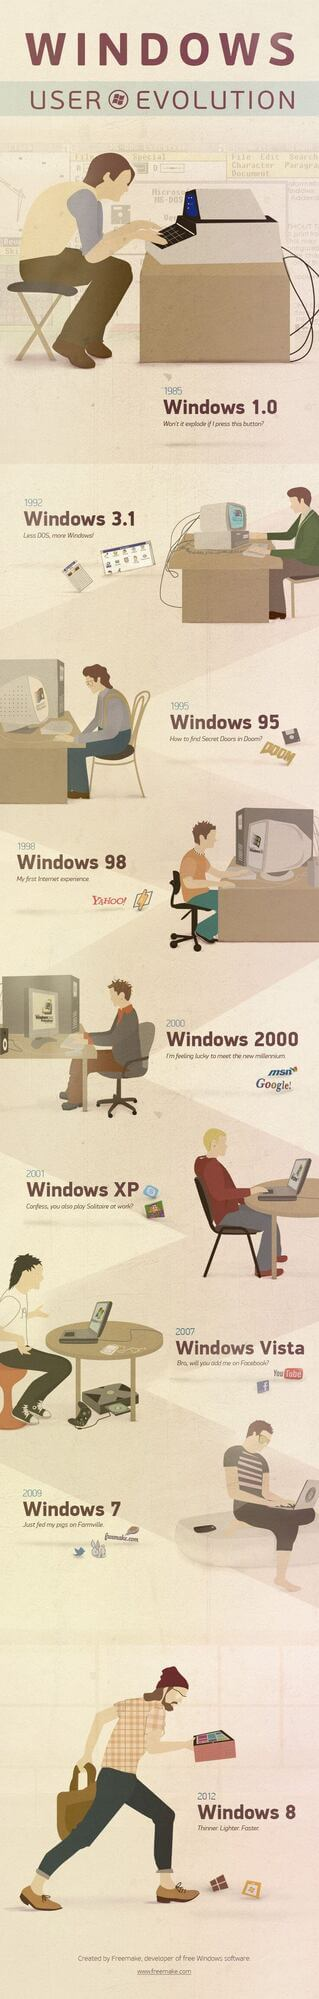 Windows User Evolution